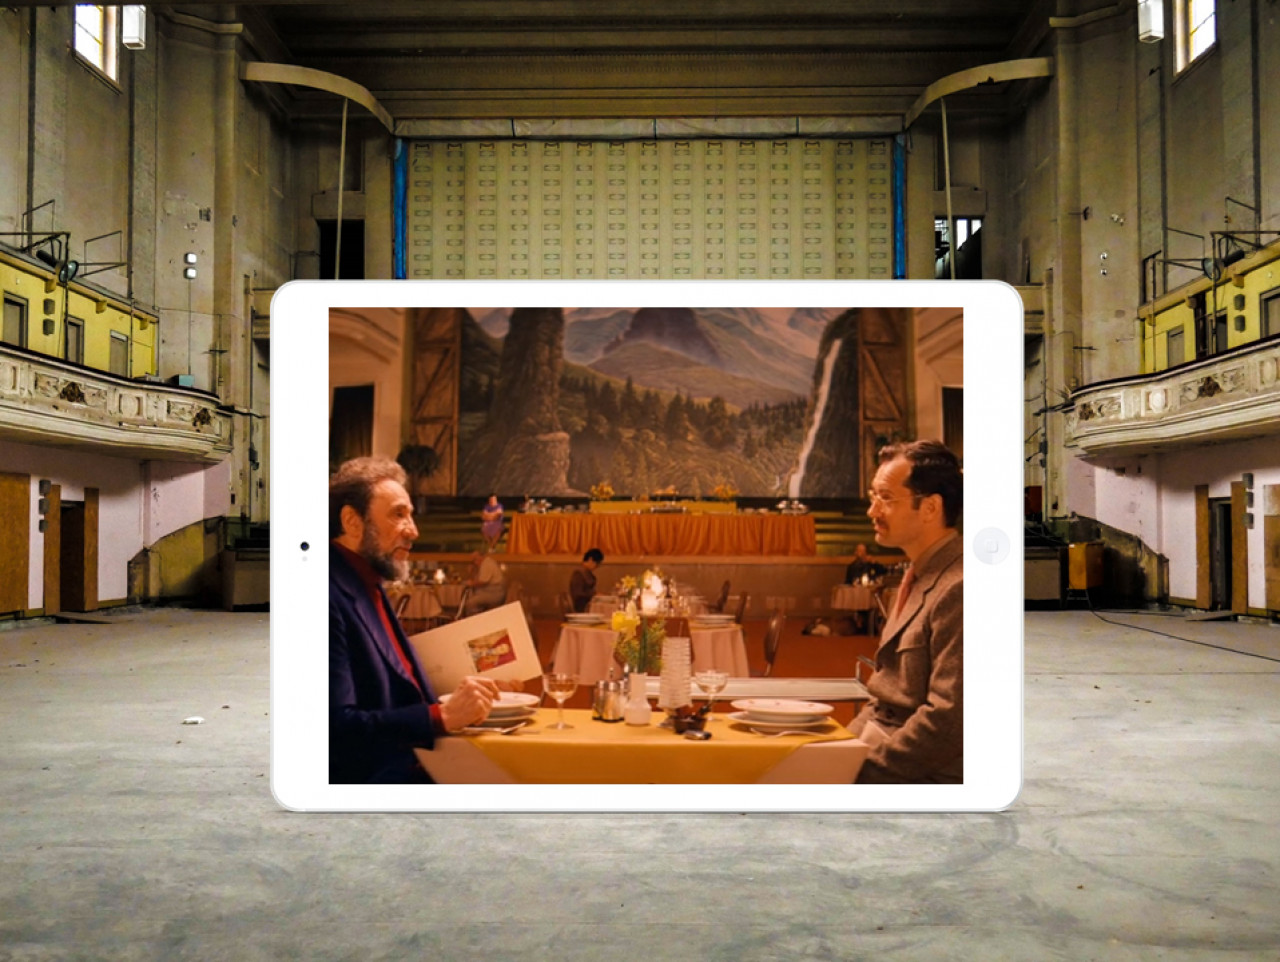 This photo was taken inside the Stadthalle (currently closed to the public due to renovations). Over dinner, Zero Mustafa tells the writer how he took ownership of the Grand Budapest and why he is determined to keep it open at all costs.